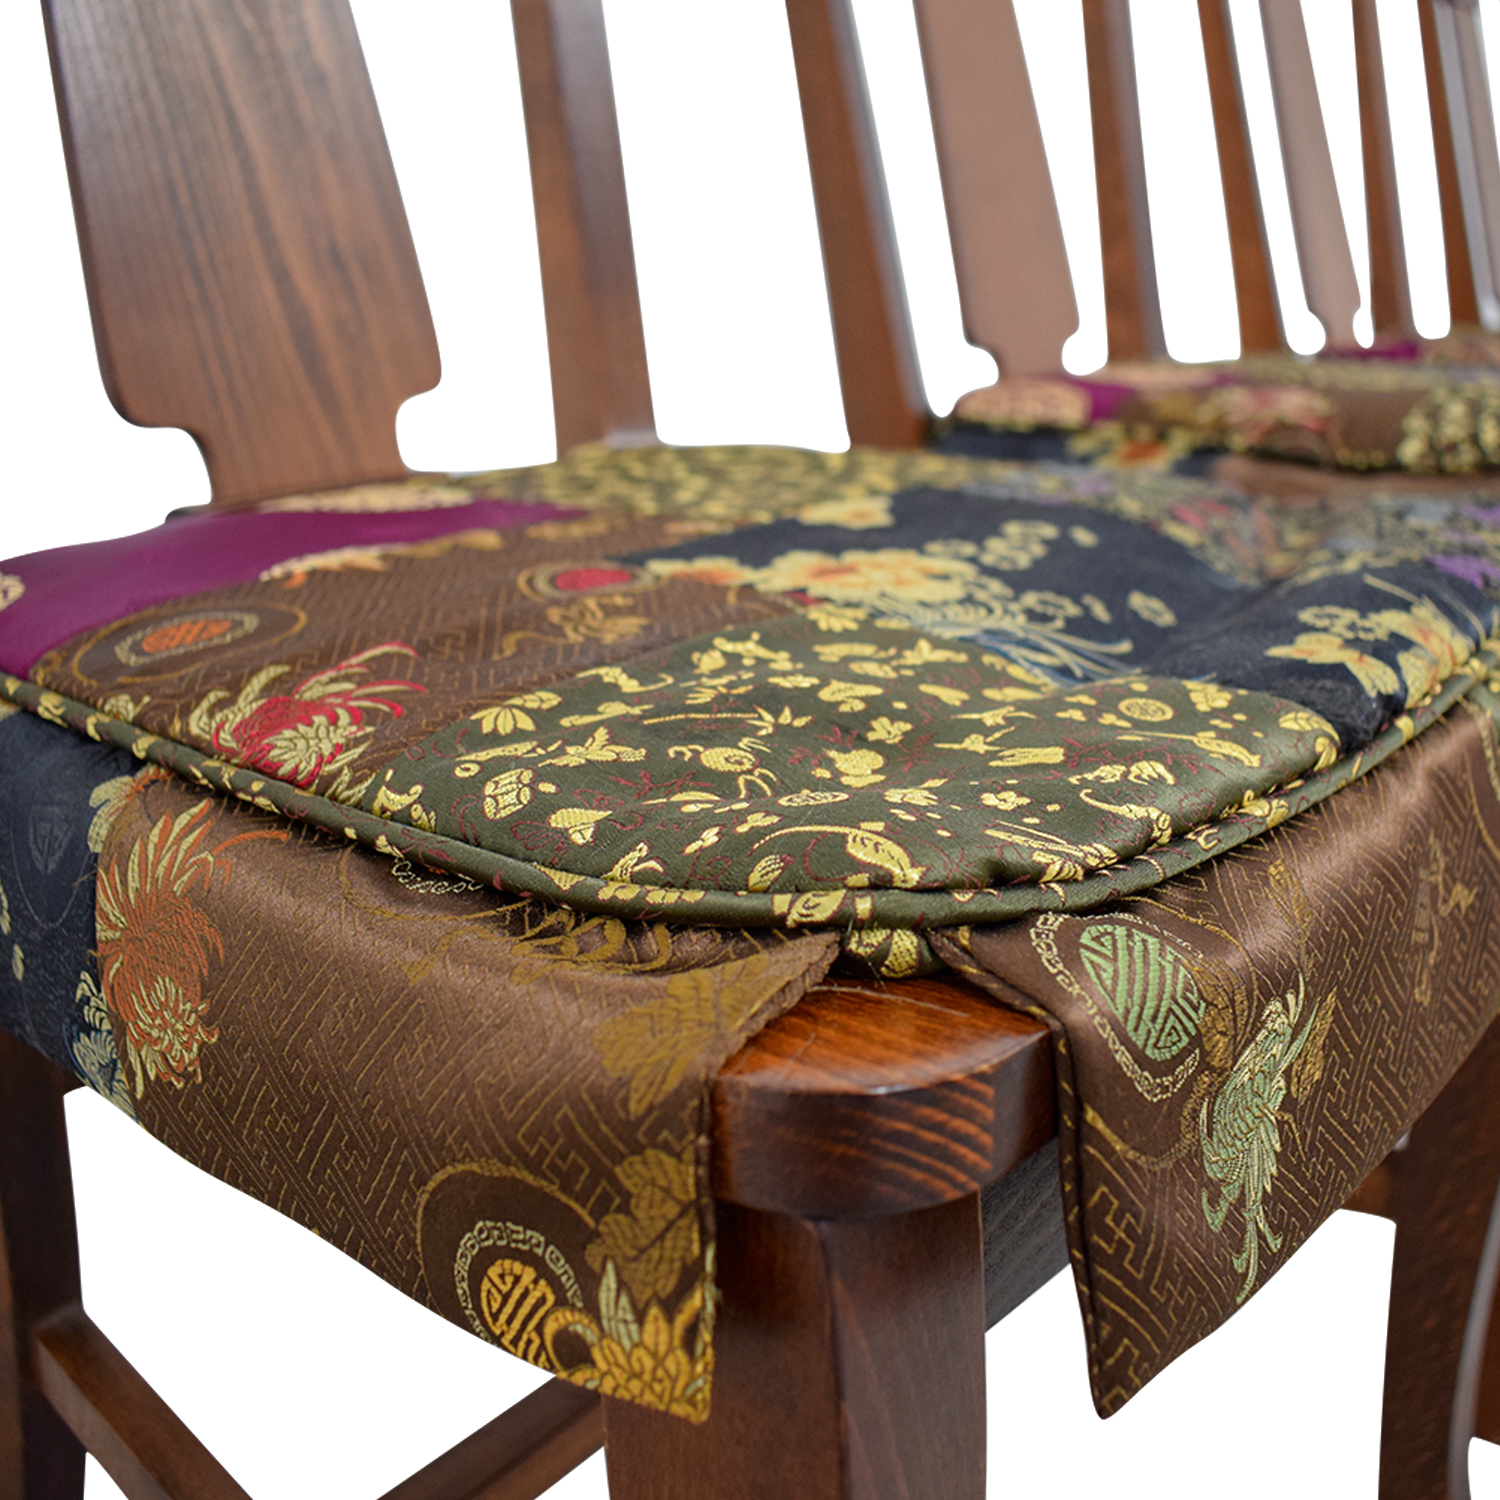 82 Off Pottery Barn Pottery Barn Loren Wood Dining Chairs With Fabric Cushions Chairs